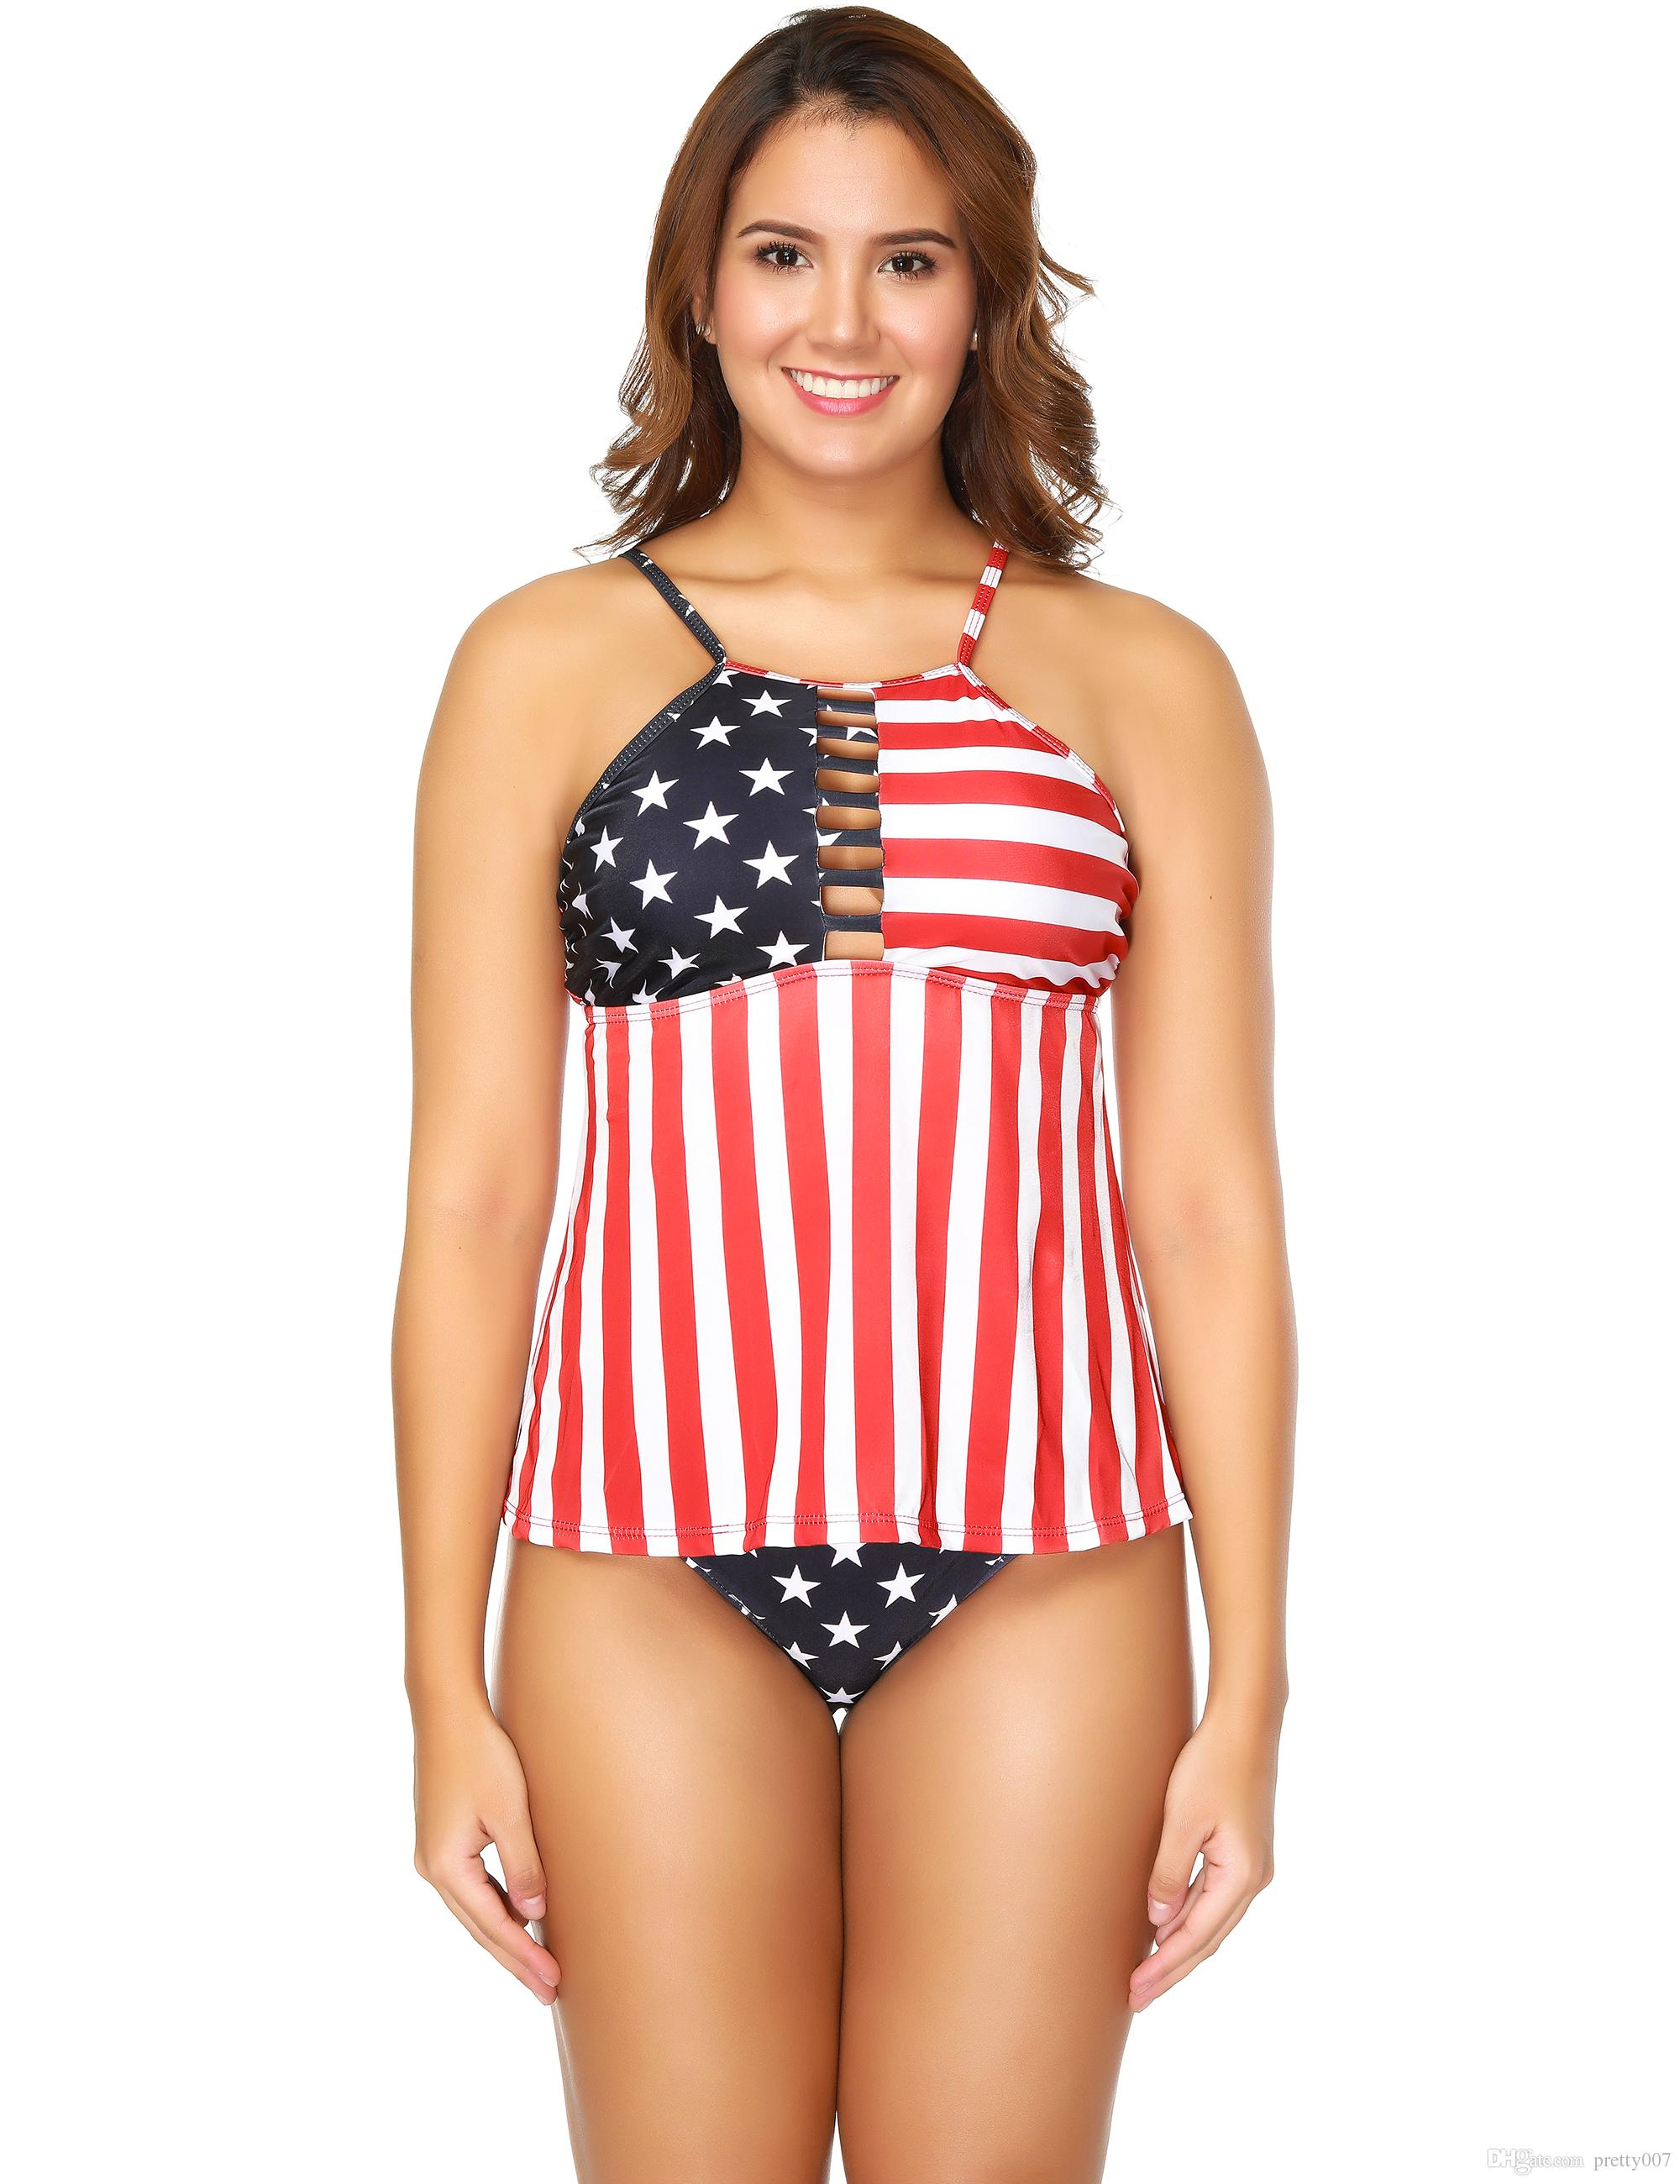 afbc7fe07bdda 2019 Fashion Swimming Suits Women American Flag Pattern Halter S 3XL  Triangle Swimwear Bathing Suits Swimsuits From Pretty007, $15.09 |  DHgate.Com